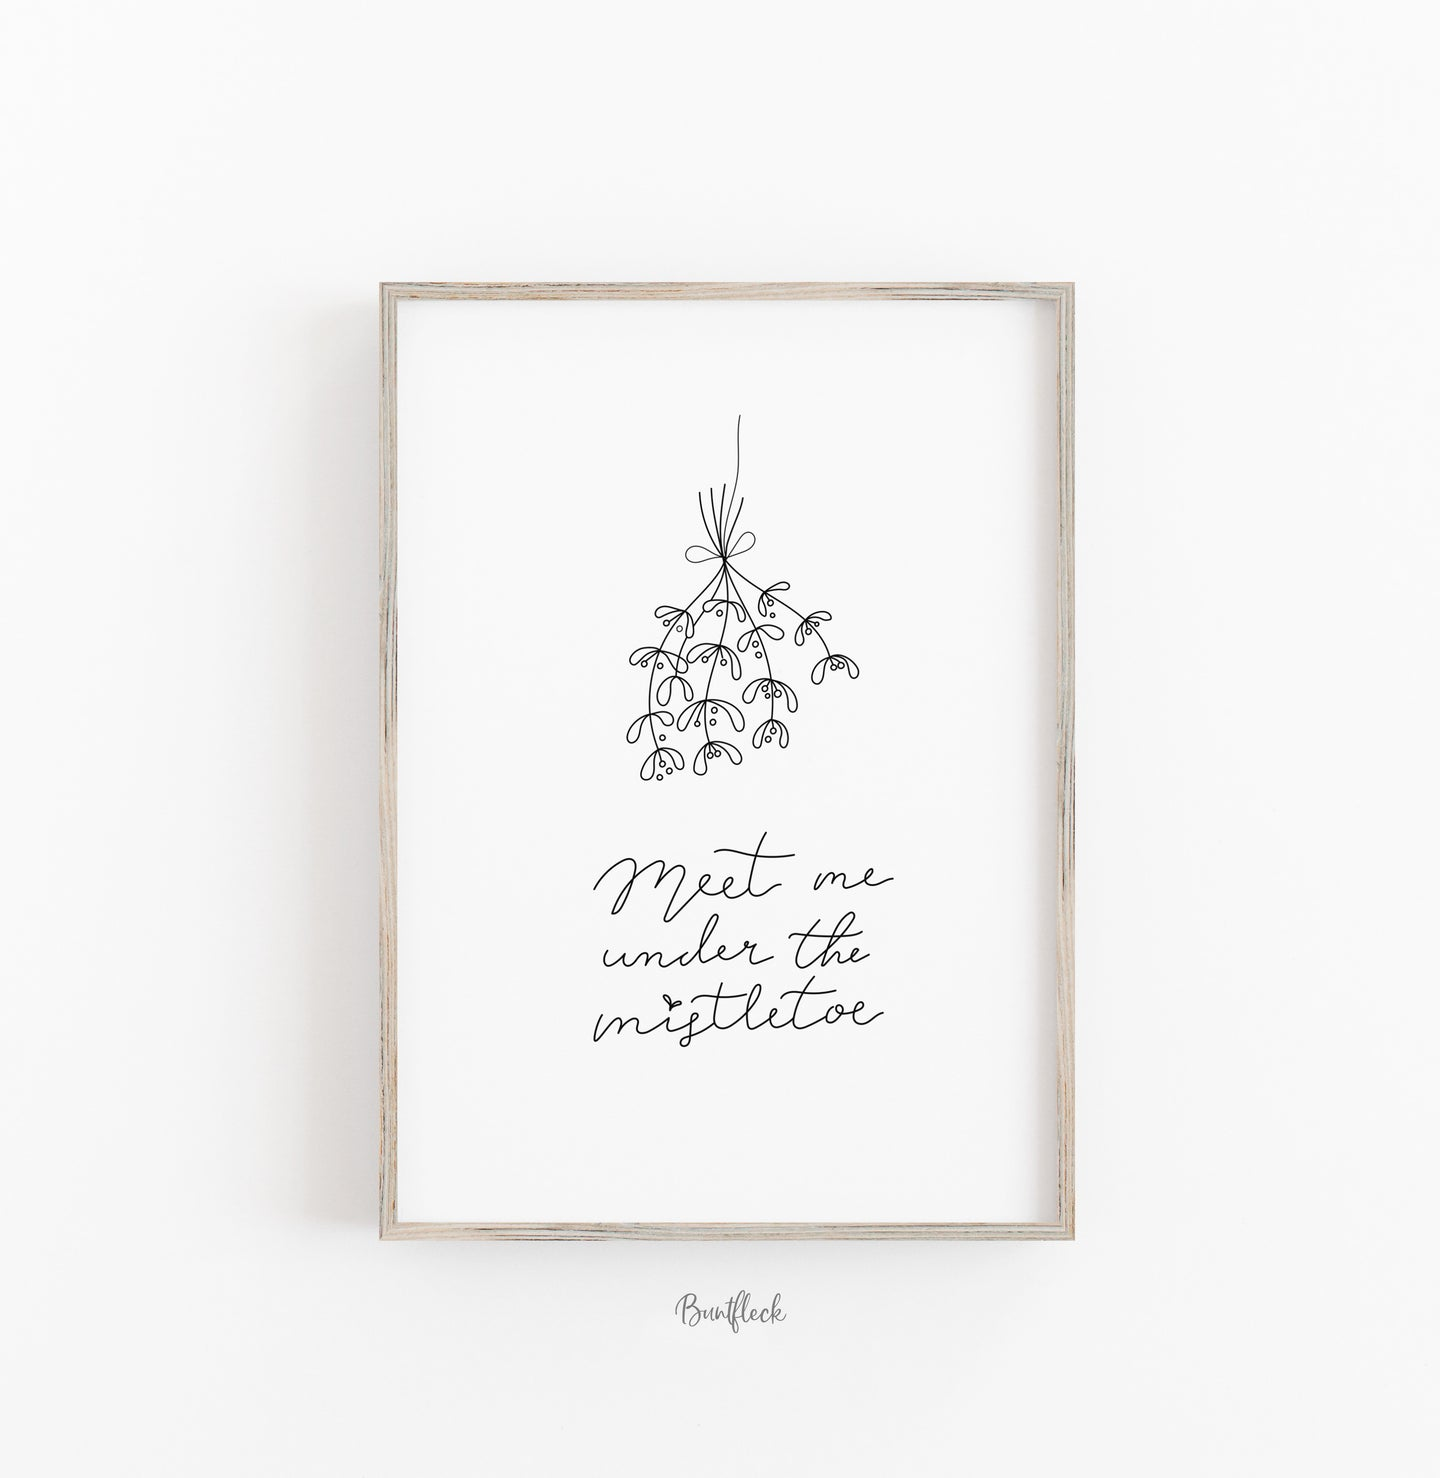 Kunstdruck/Poster-Meet me under the mistletoe